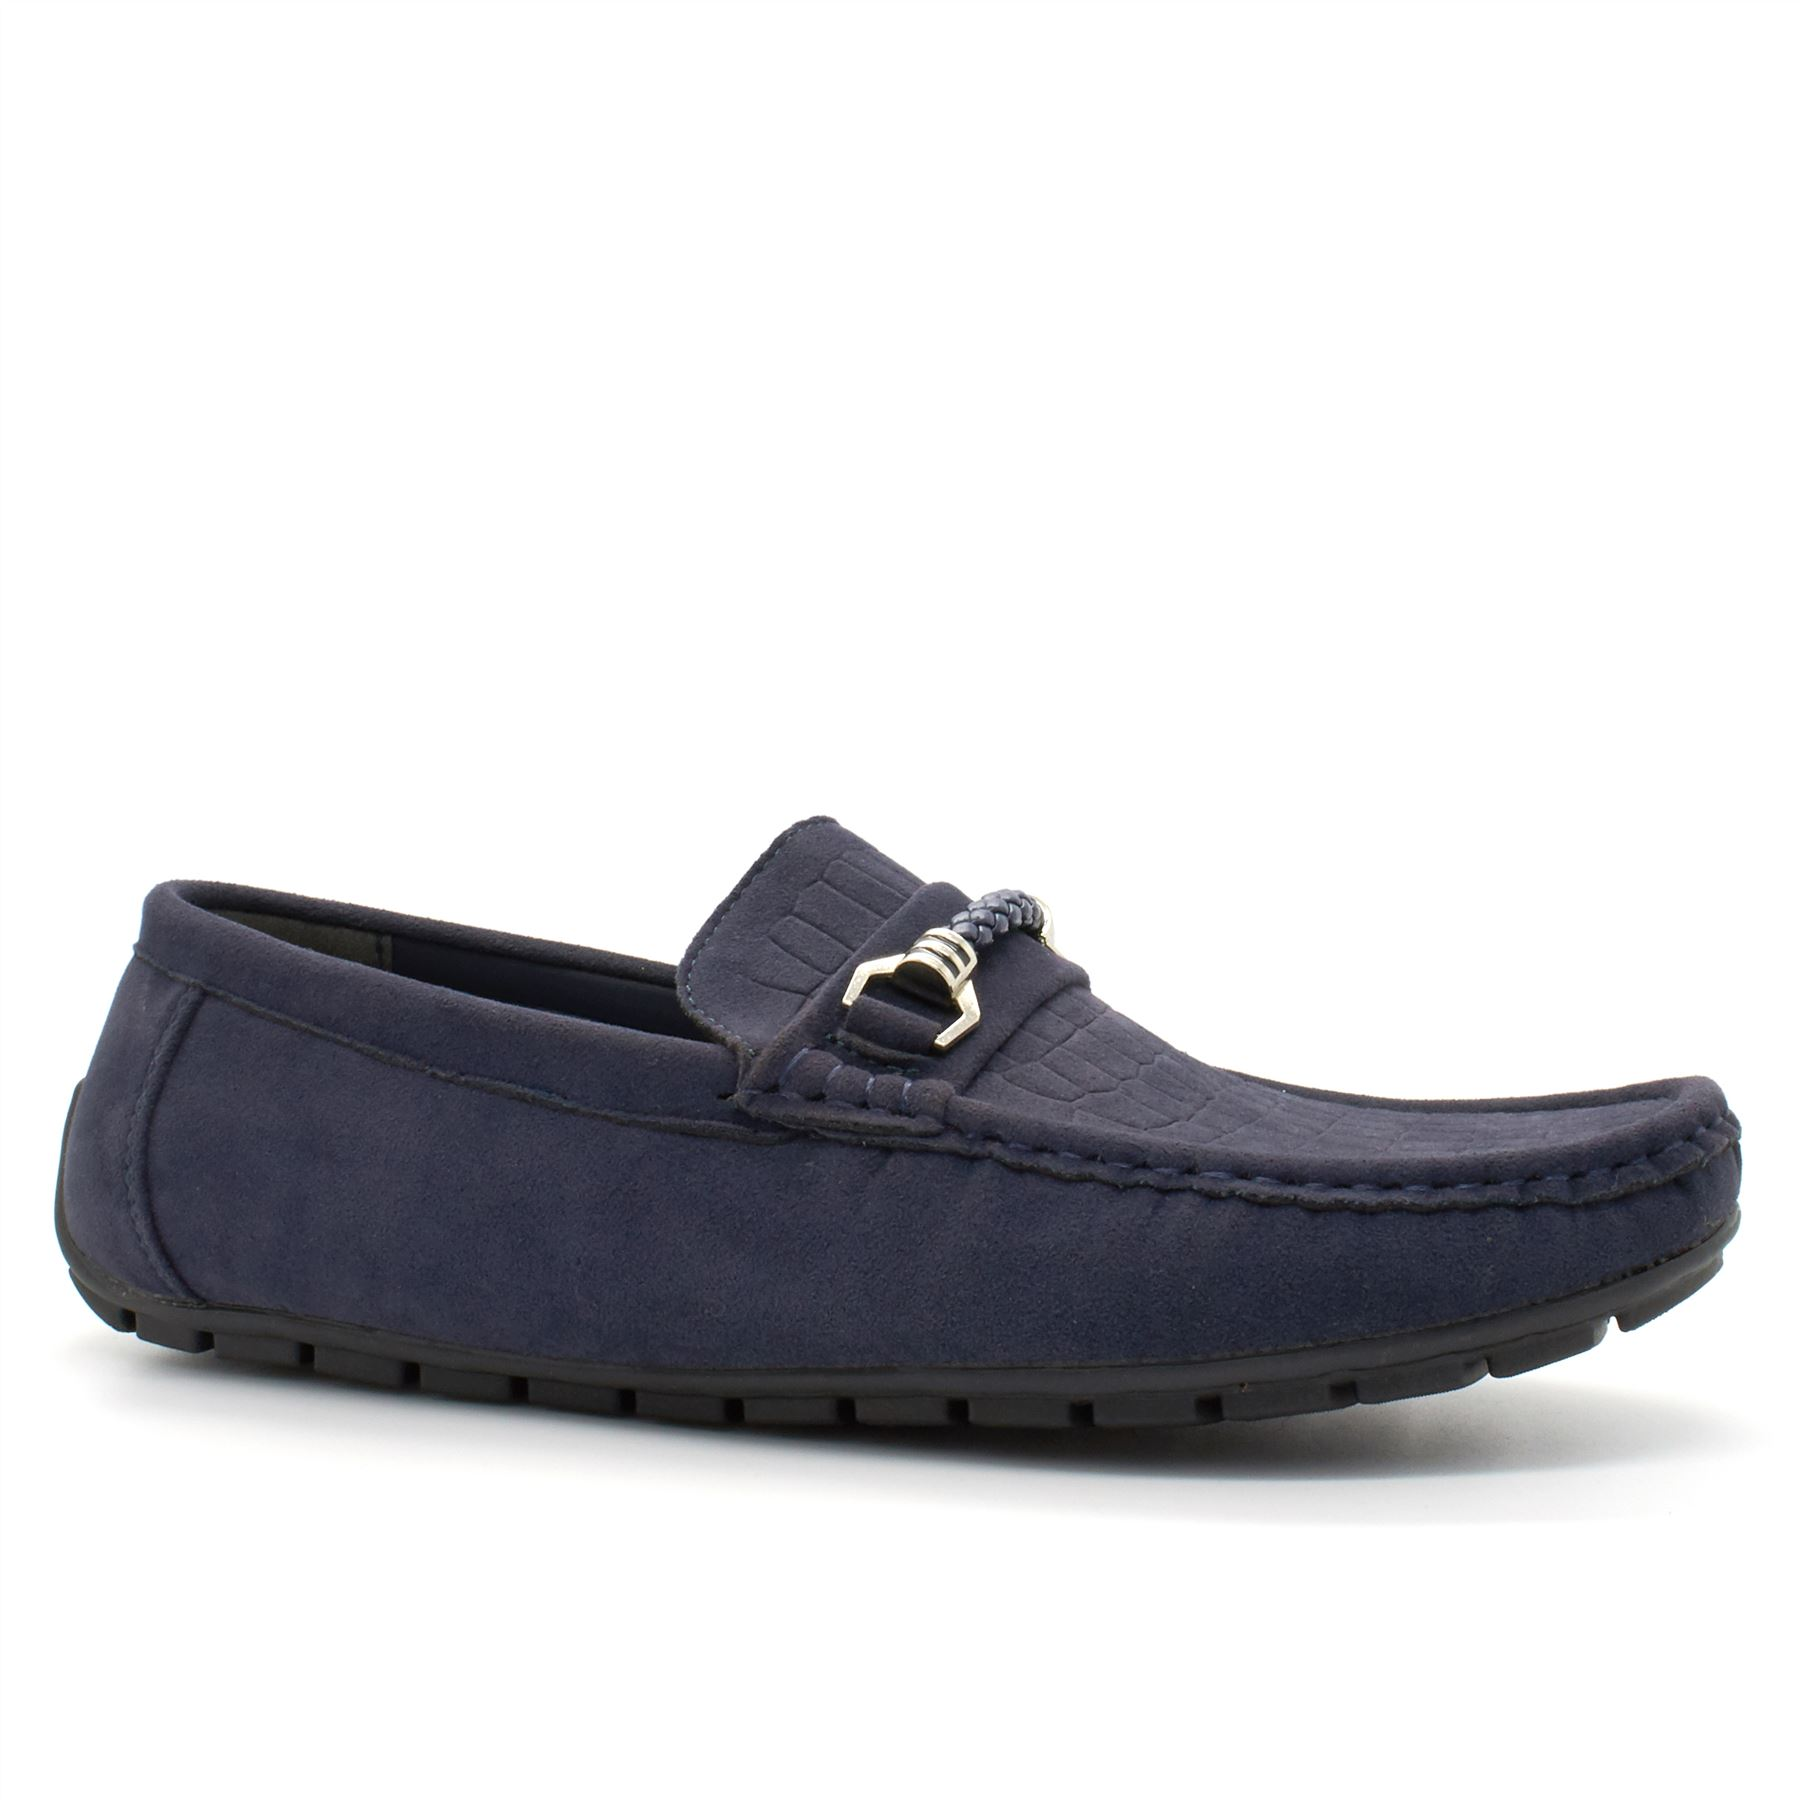 new mens casual loafers moccasins slip on driving shoes